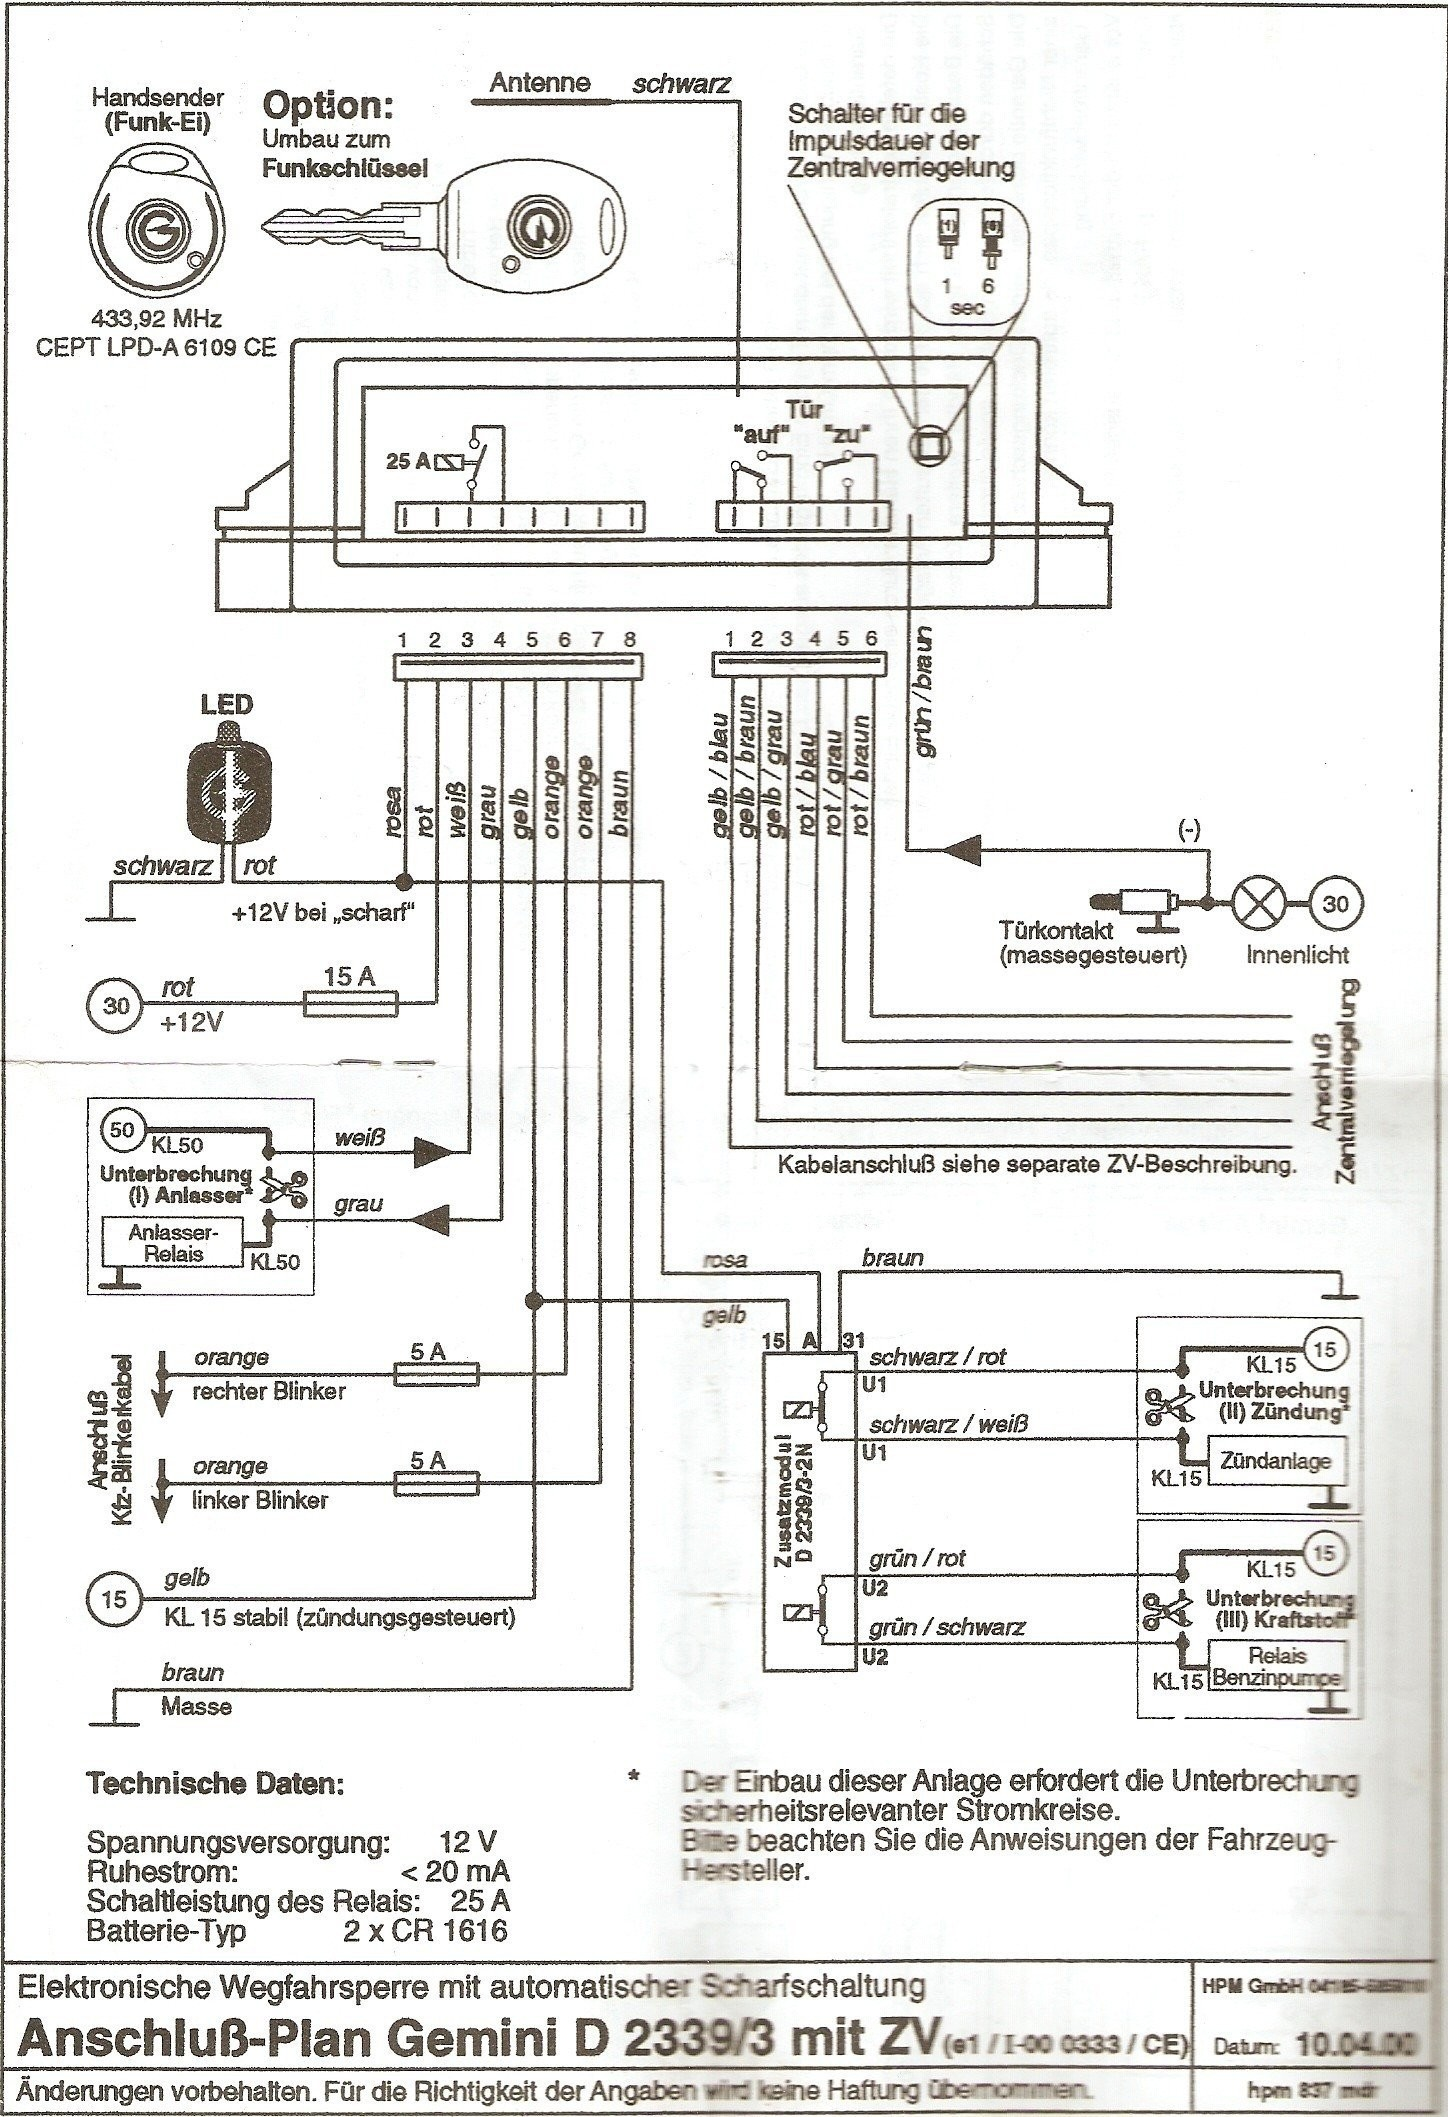 Viper 5704 Wiring Diagram Library Car Alarm For 5706v Best Of Image 5501 Remote Starter